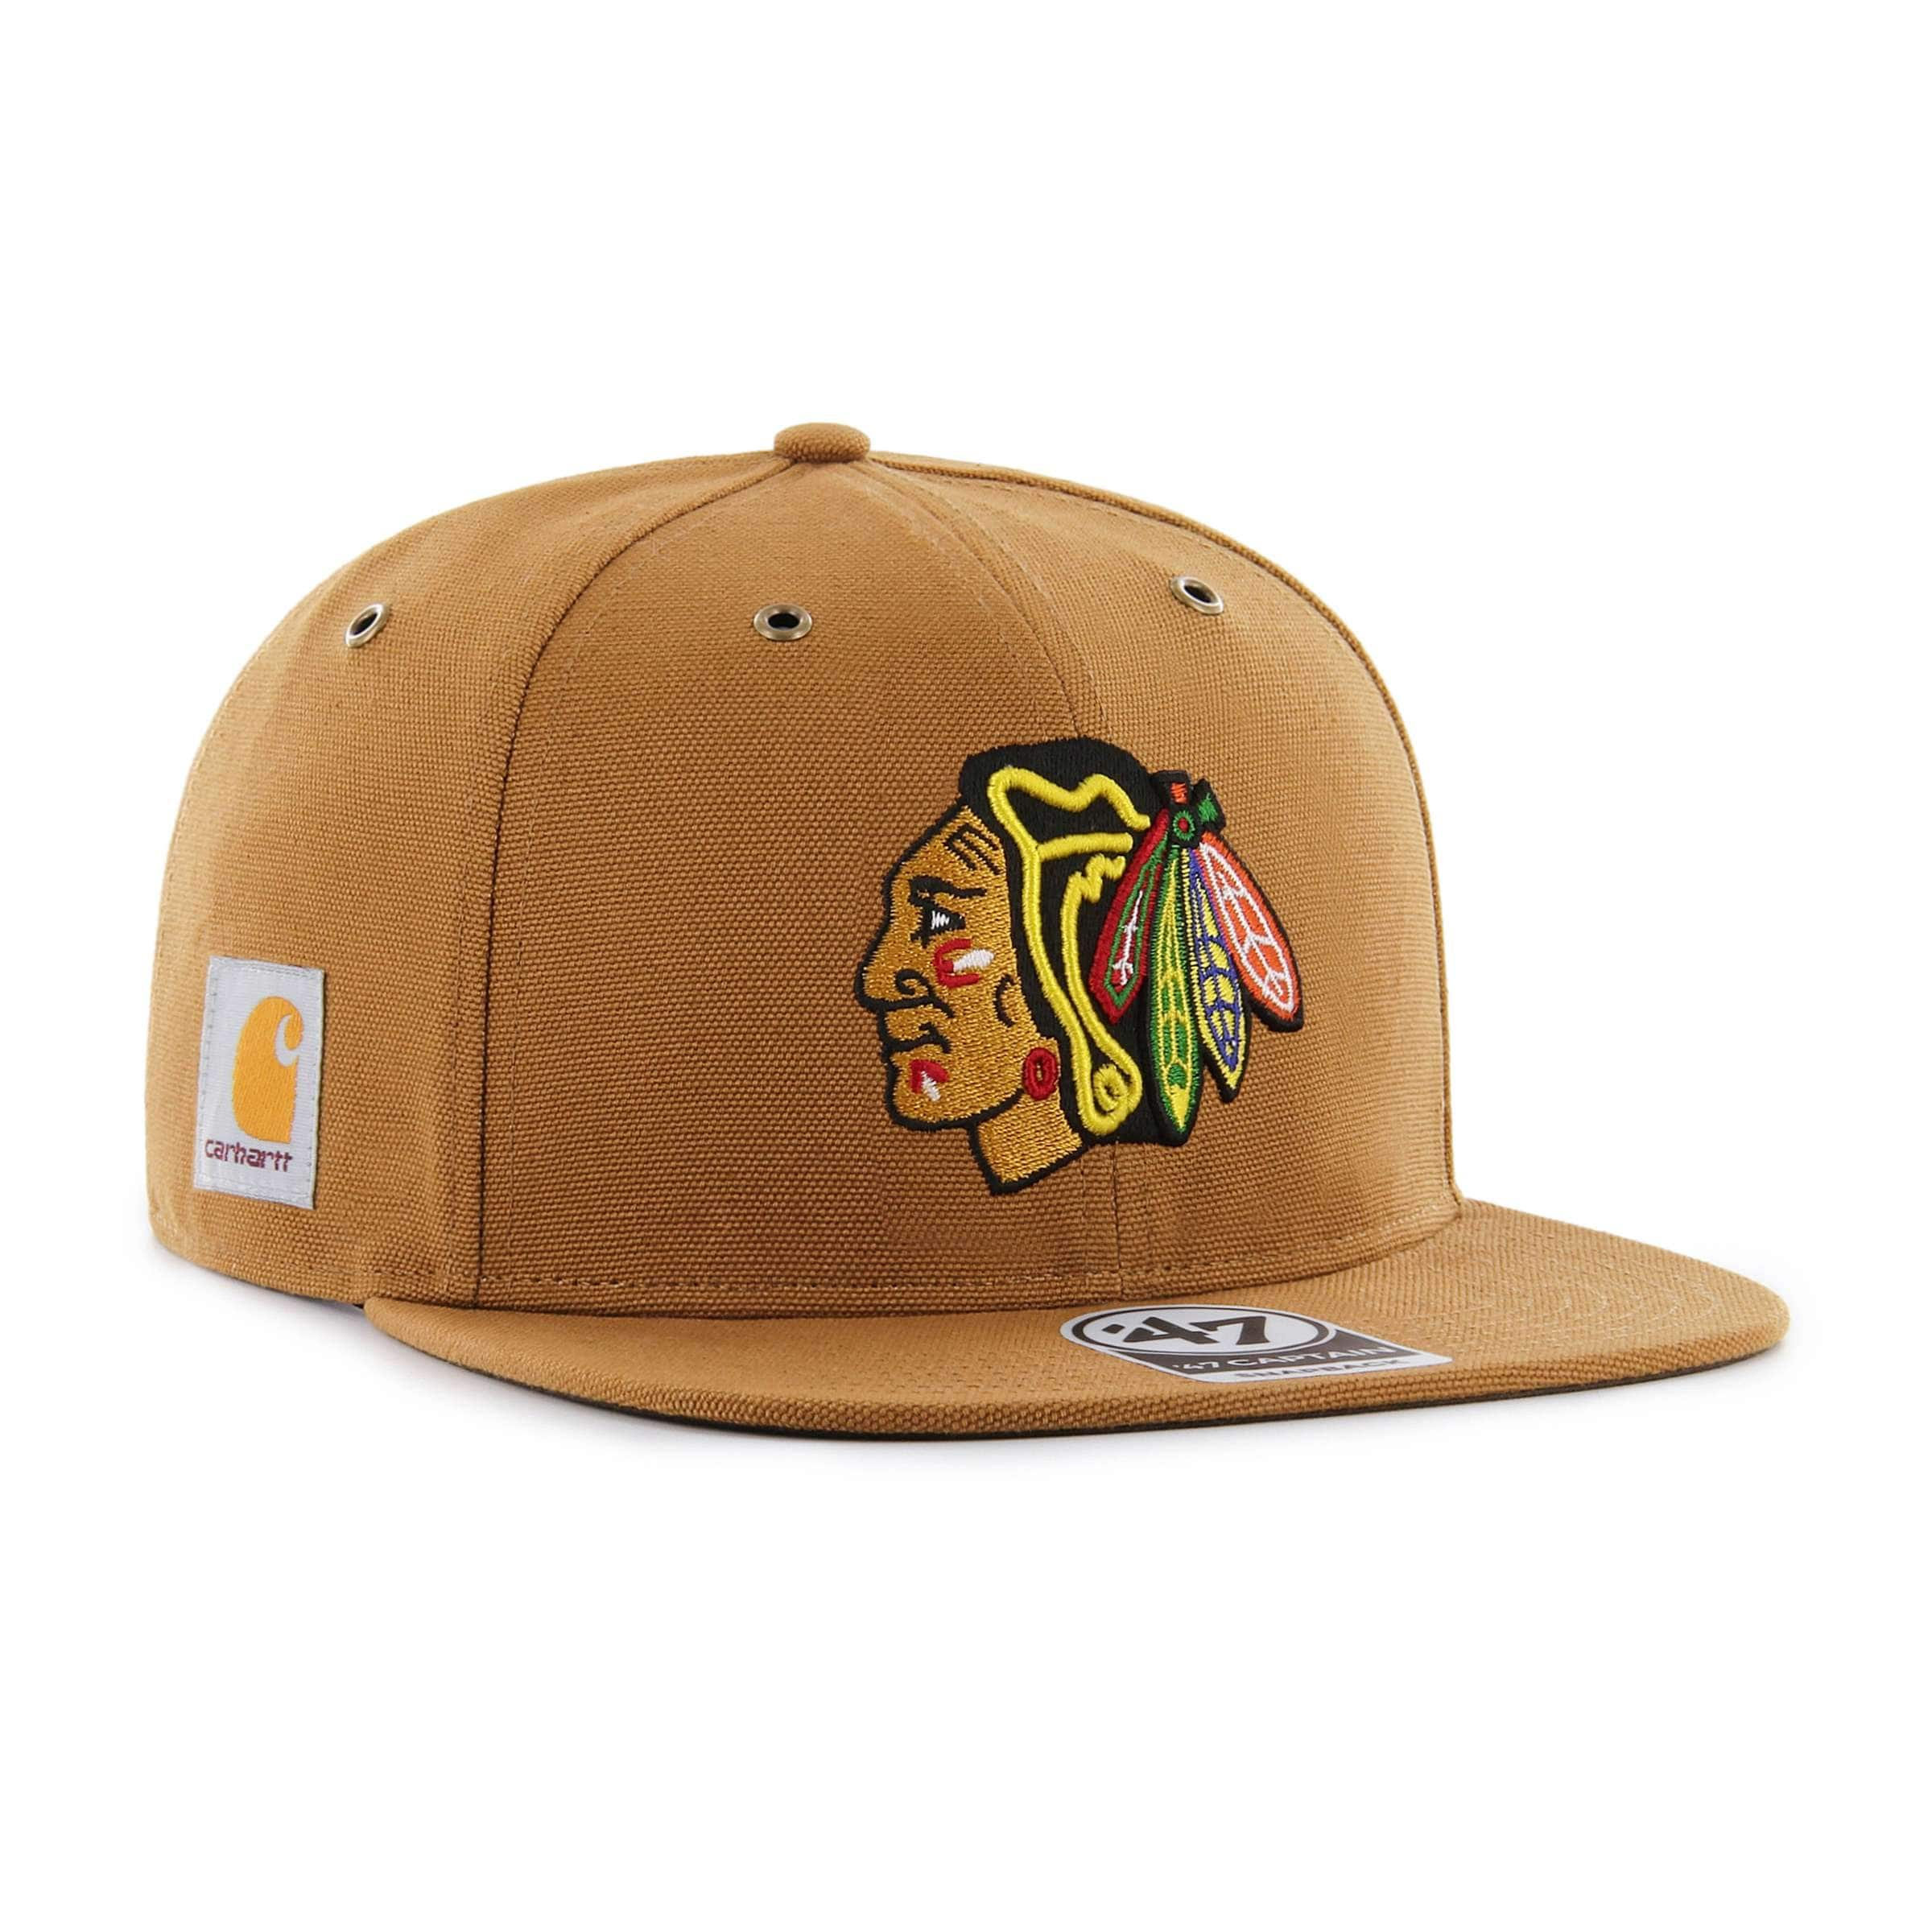 Unisex Chicago Blackhawks Carhartt x  47 Captain KMOR102  b06112563